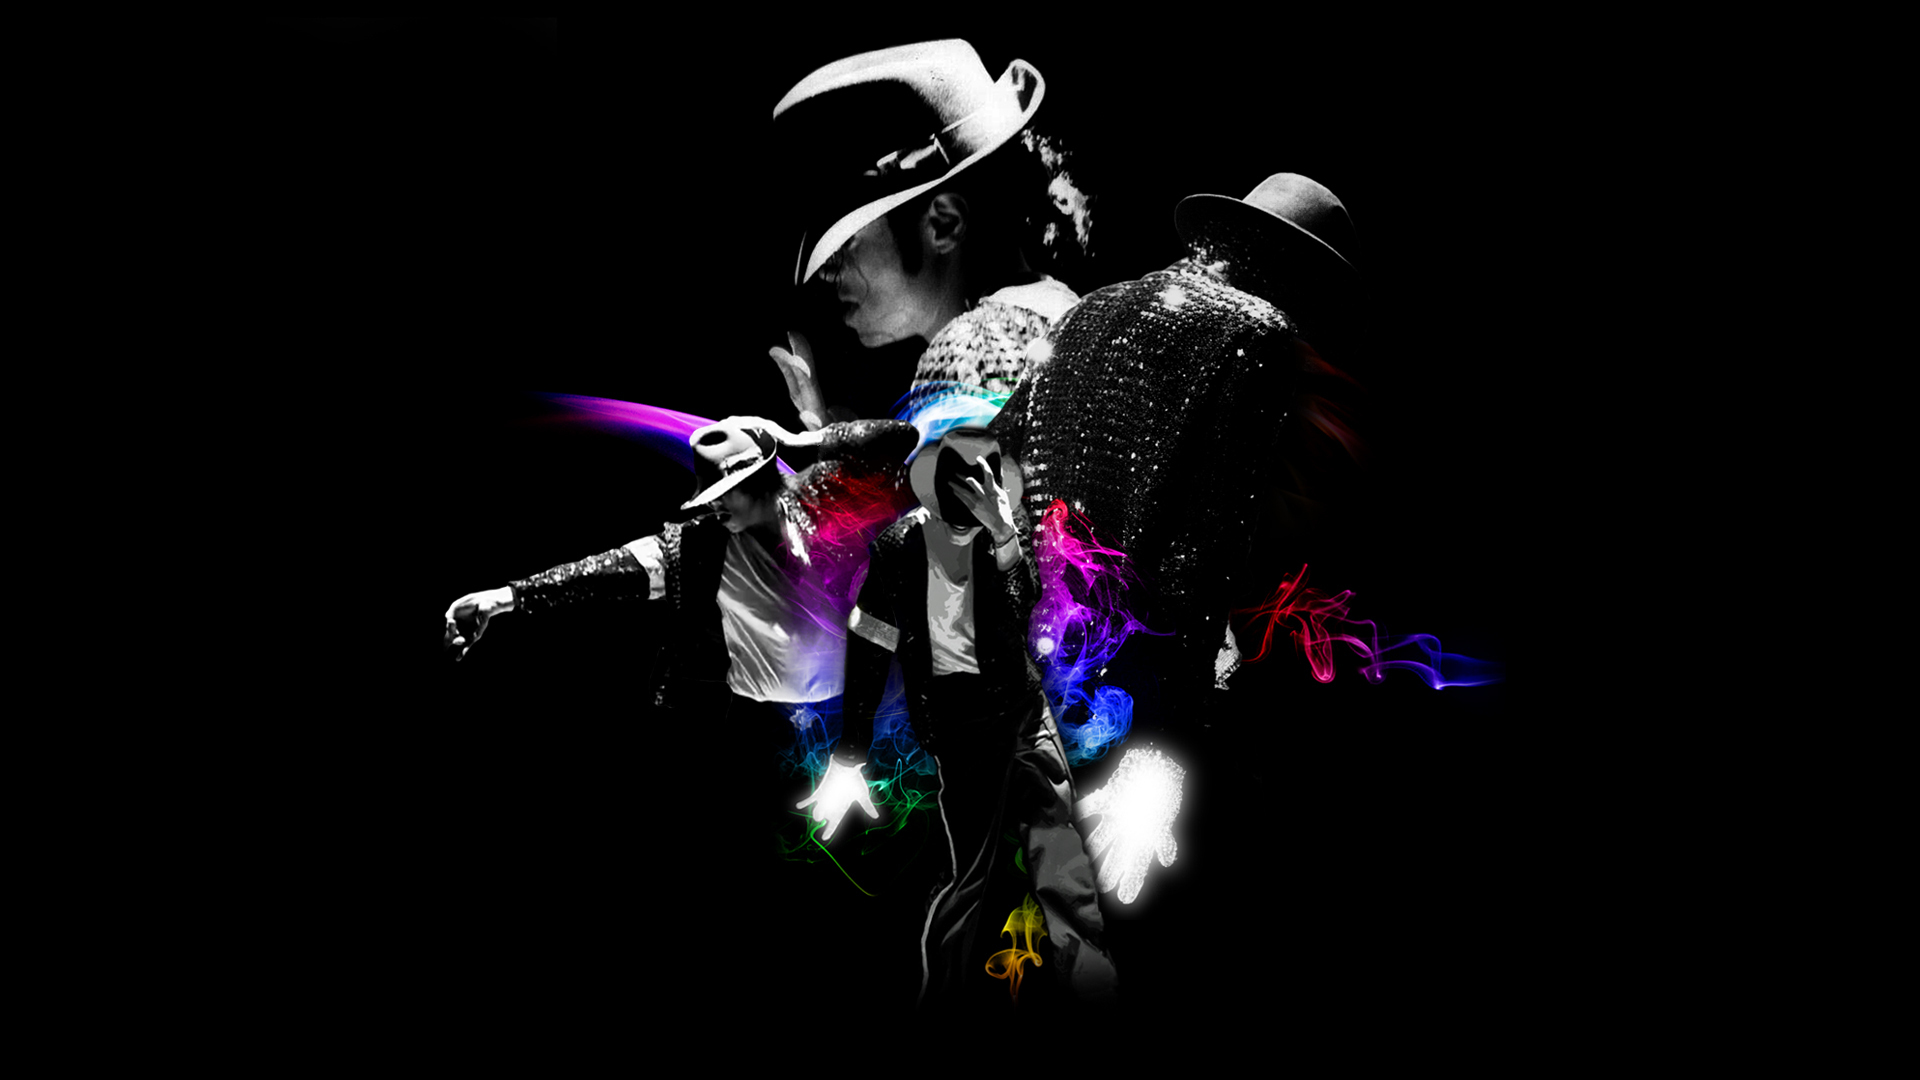 Michael Jackson Wallpapers High Resolution And Quality Download